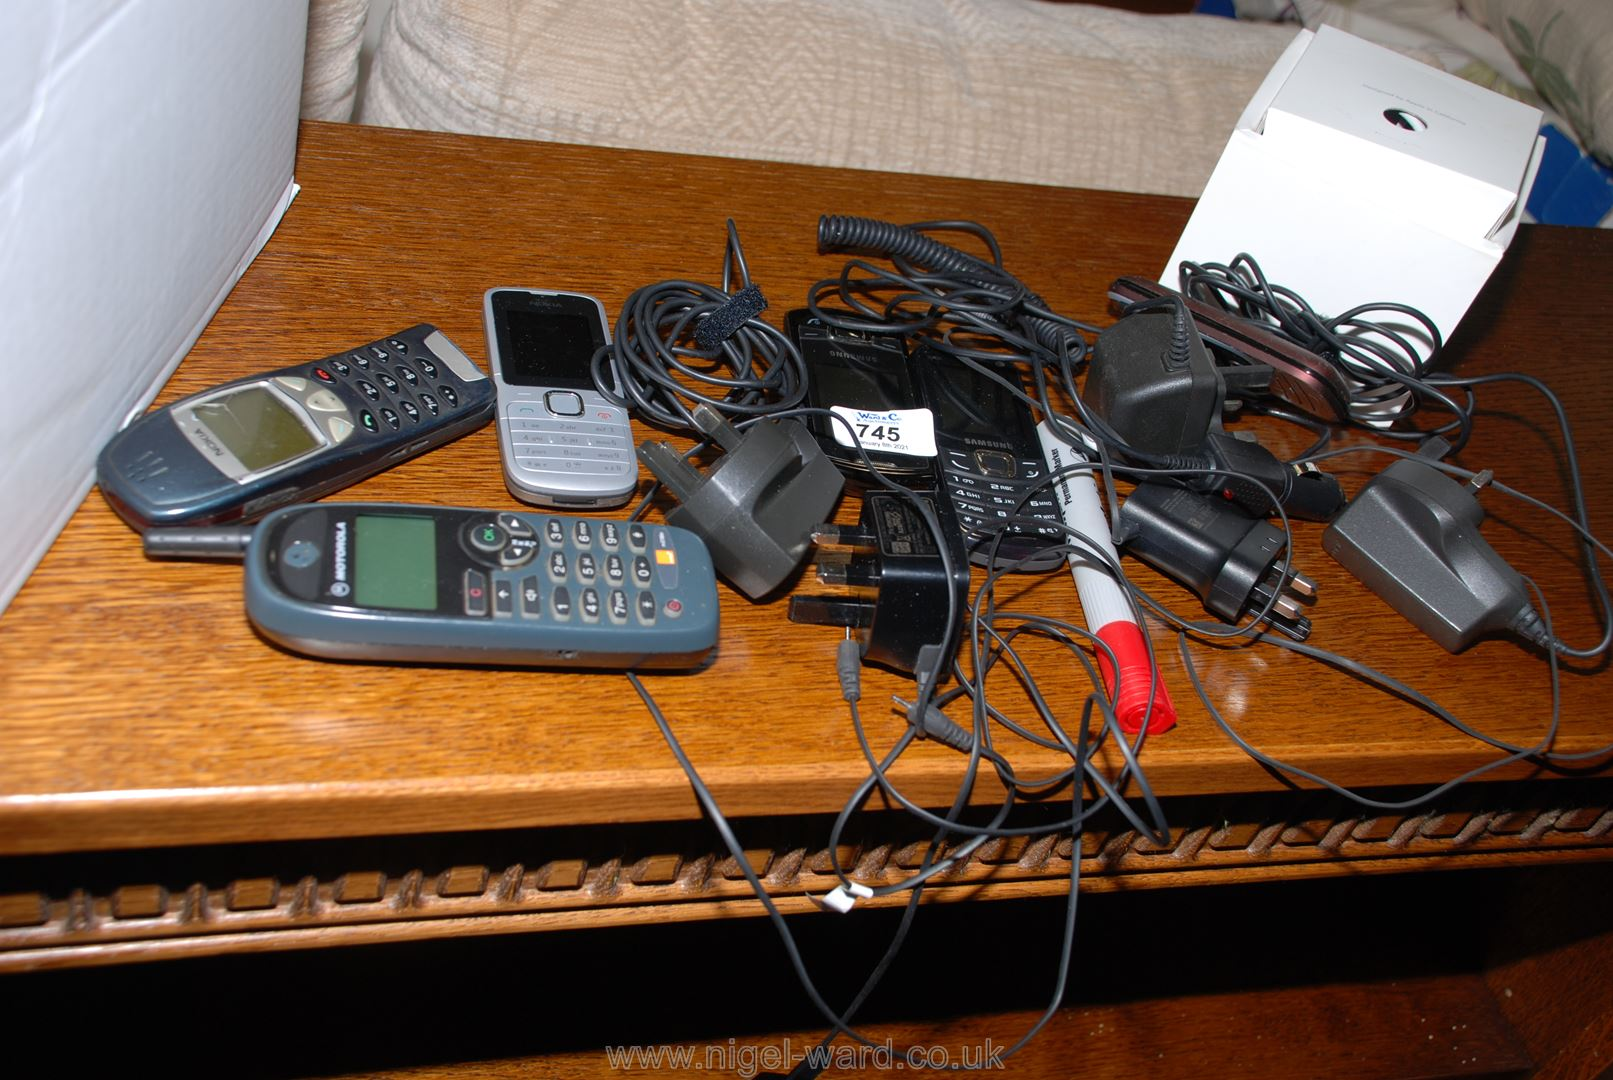 A quantity of various mobile phones, chargers, etc.